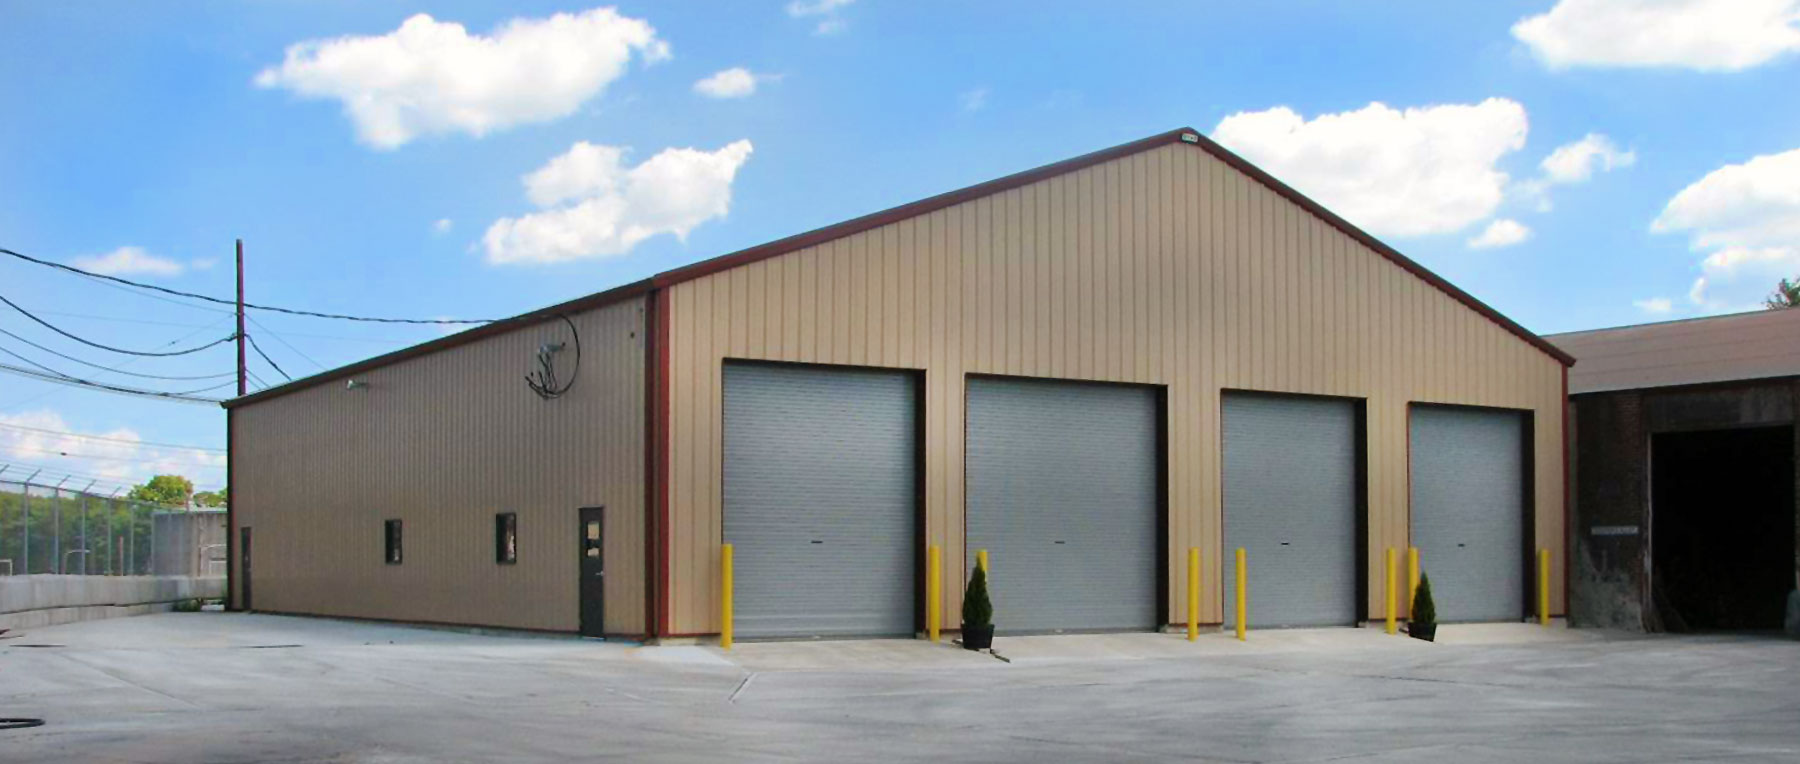 Metal Buildings | Treyco Manufacturing